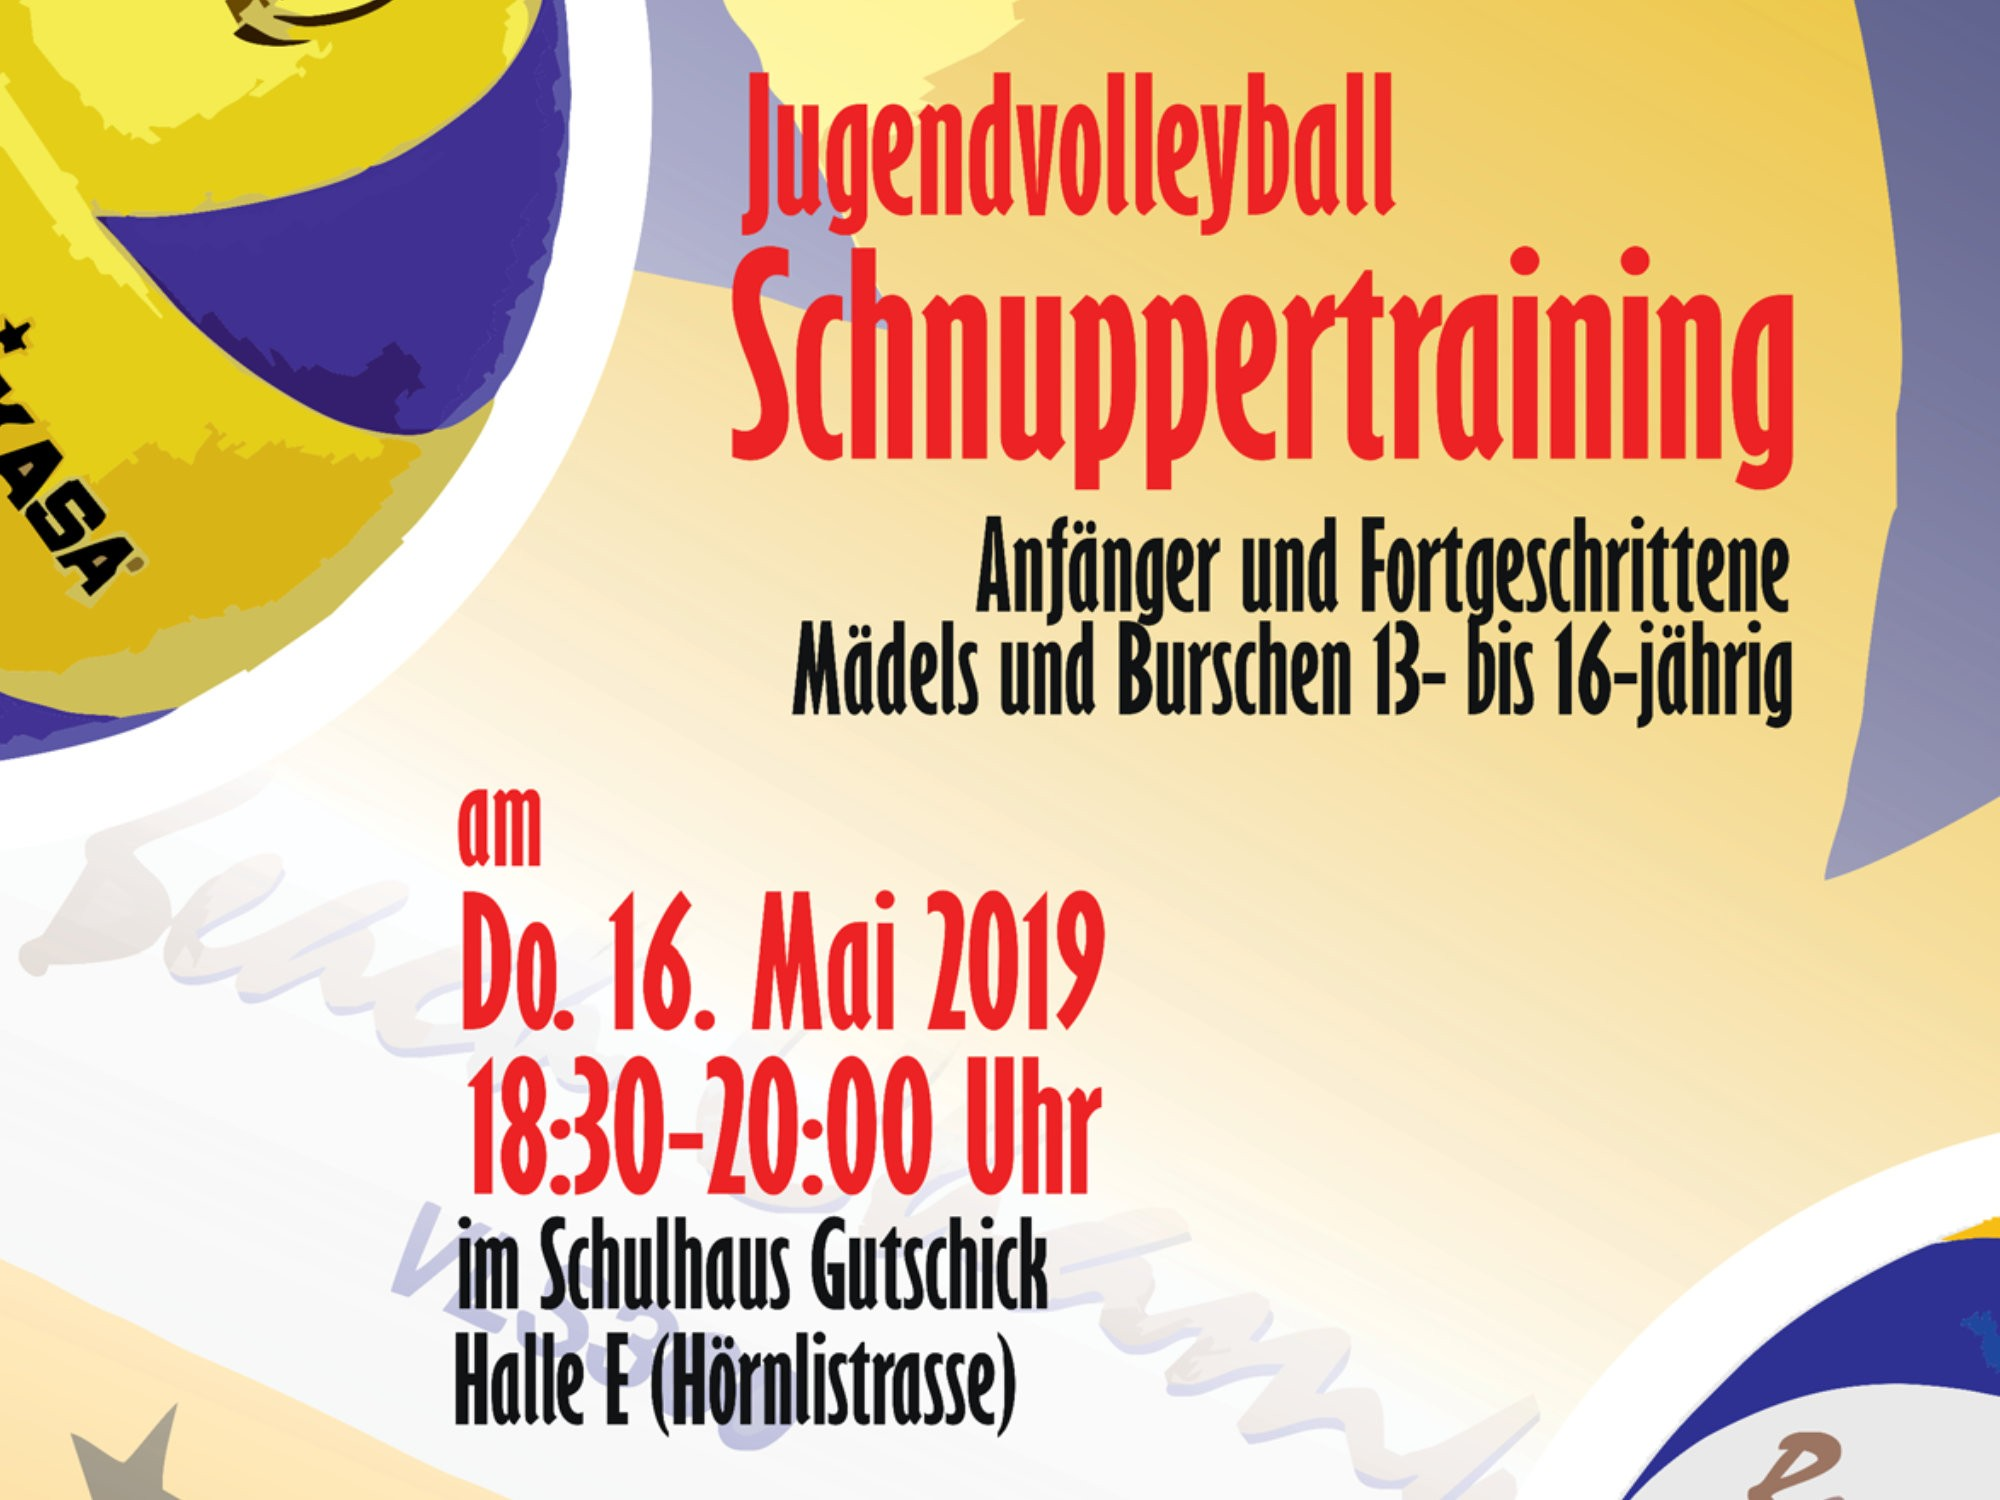 NSW-Jugendvolleyball-Schnuppertraining 2019